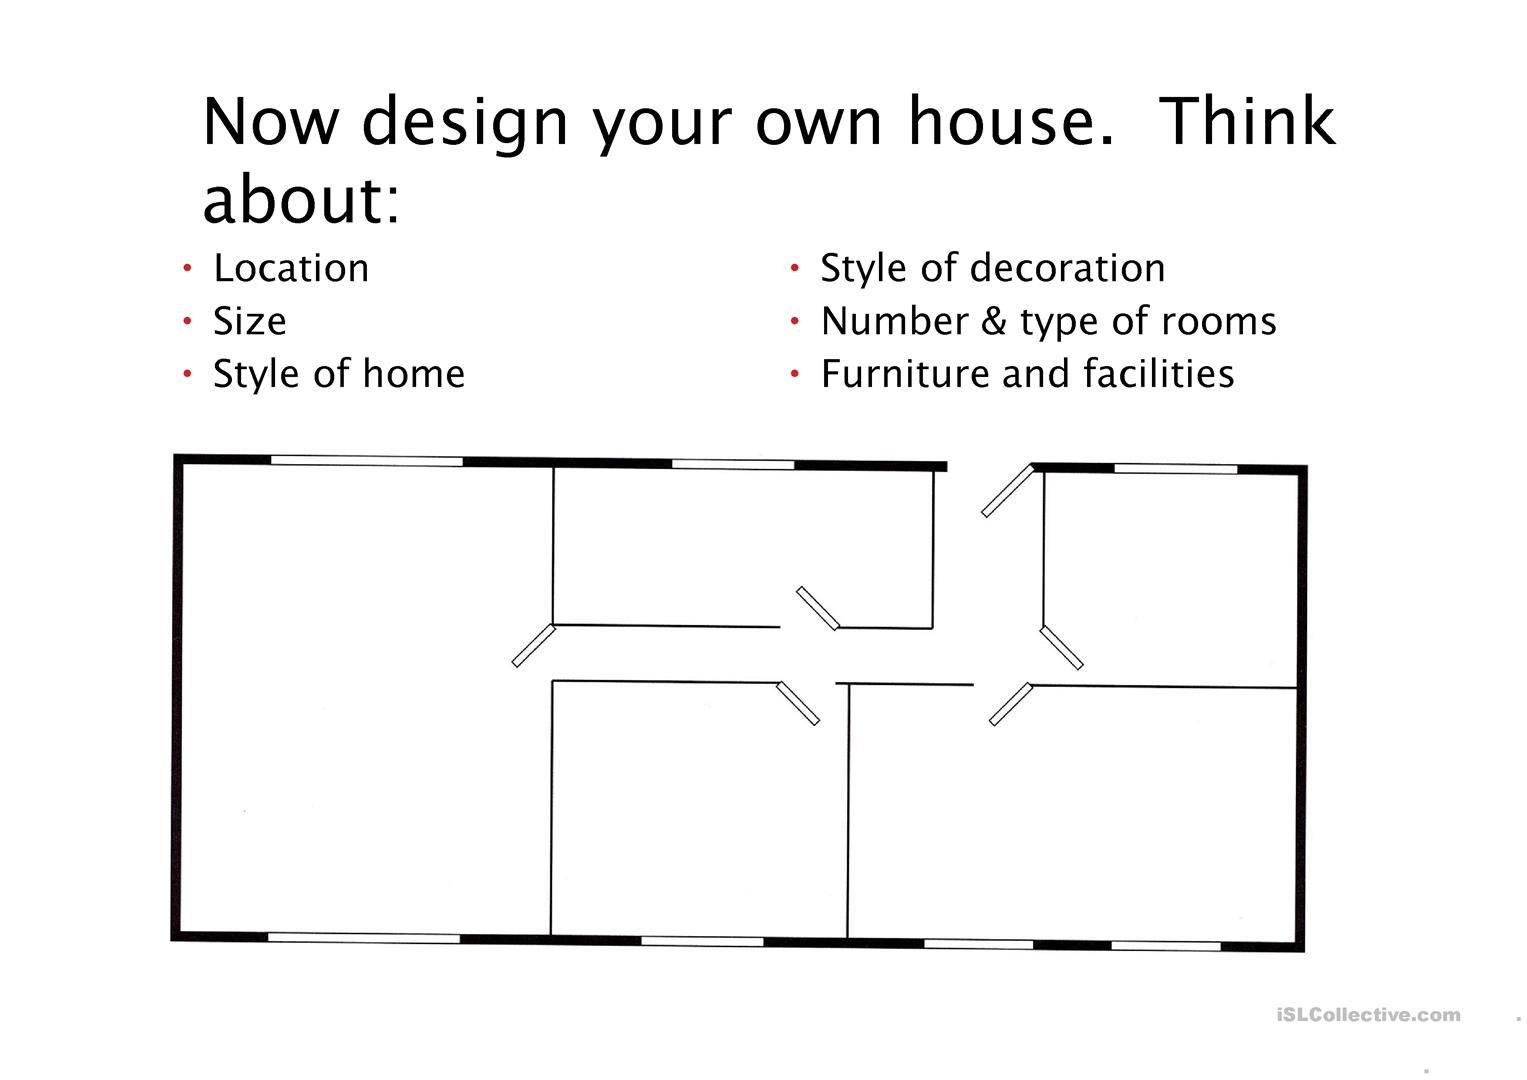 Design Your Dream Home Worksheet